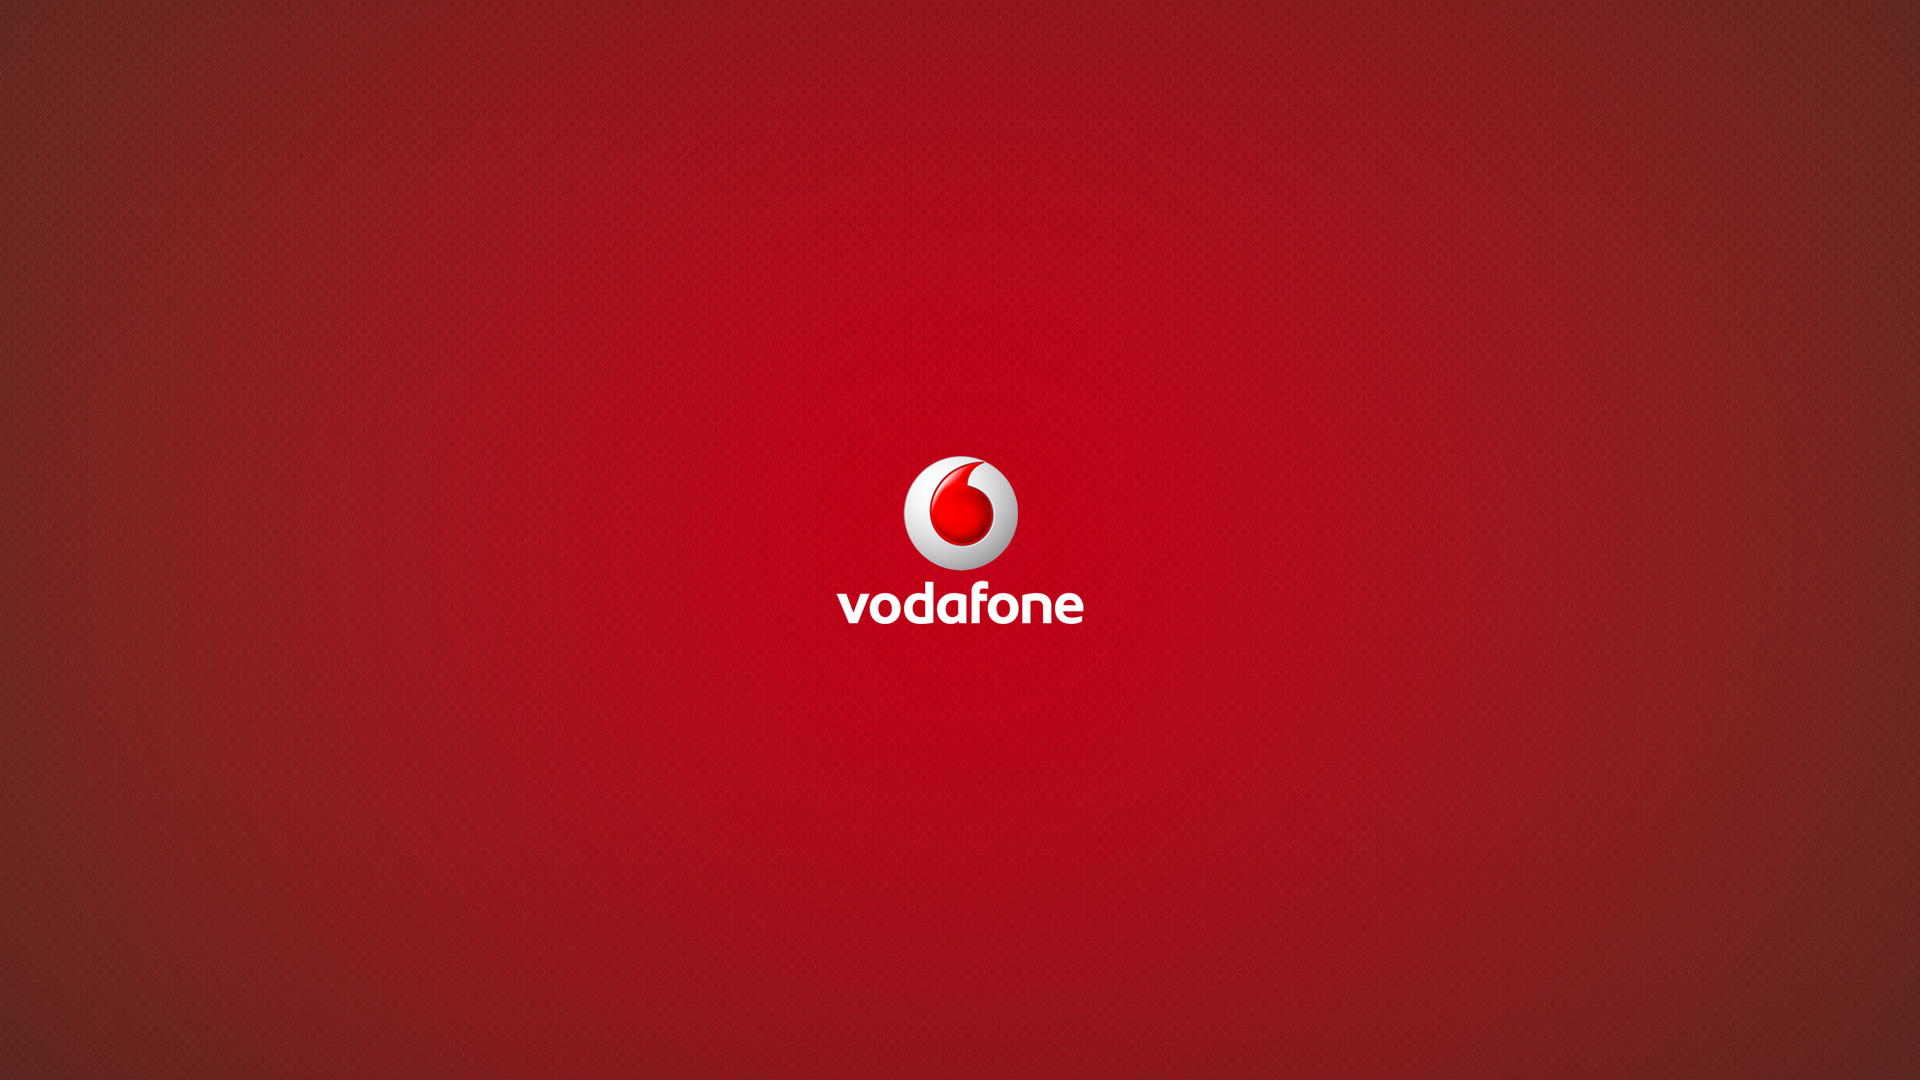 Vodafone Logo Wallpaper Hd